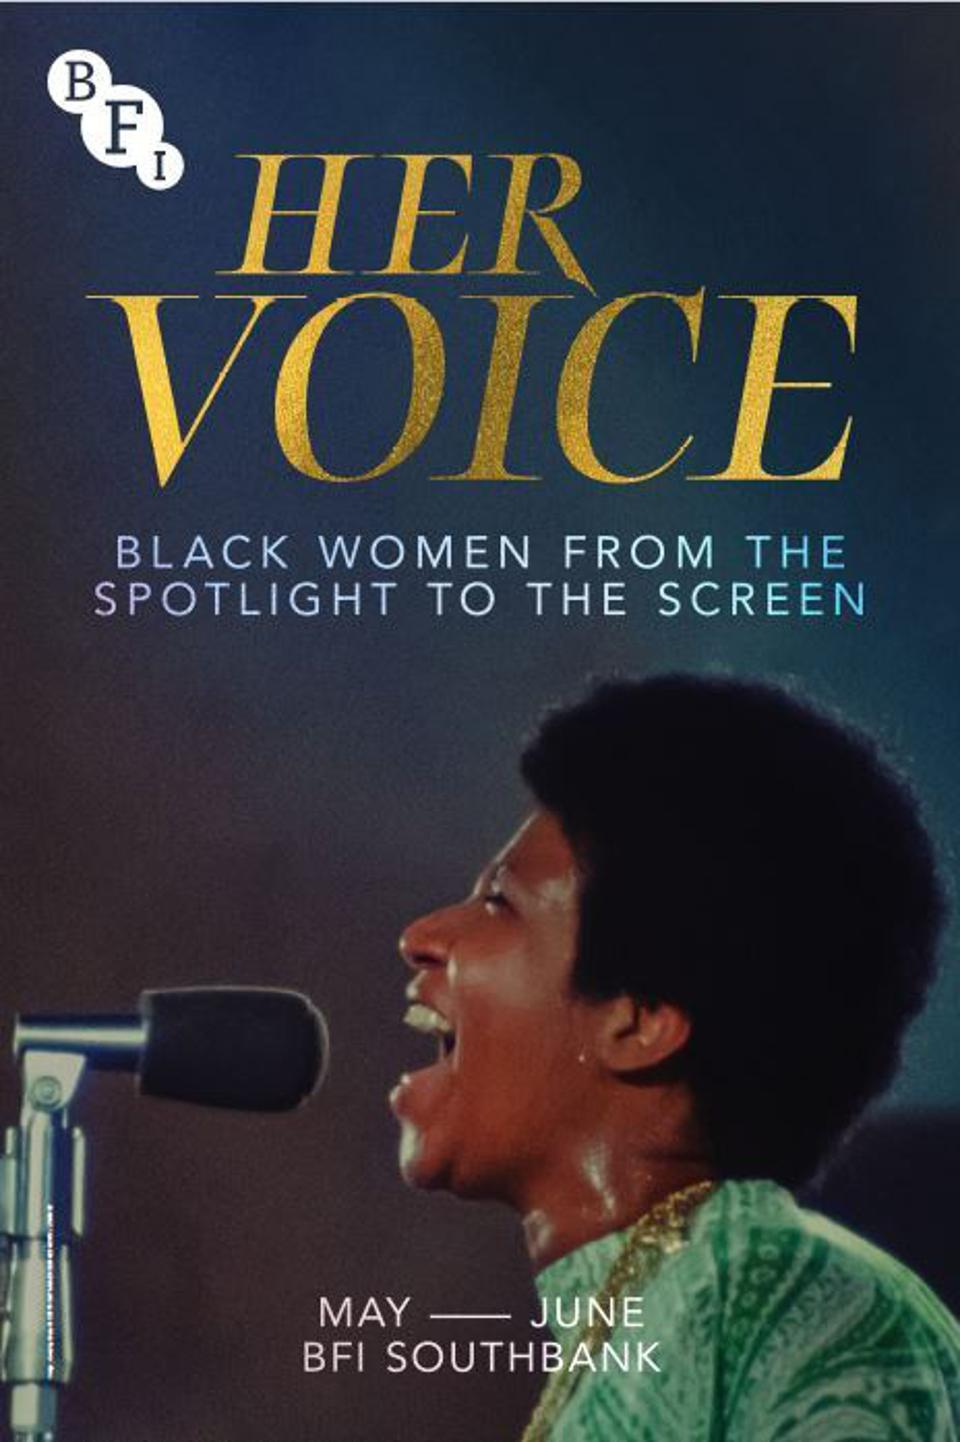 Her Voice: Black Women From the Spotlight to the Screen is at BFI Southbank